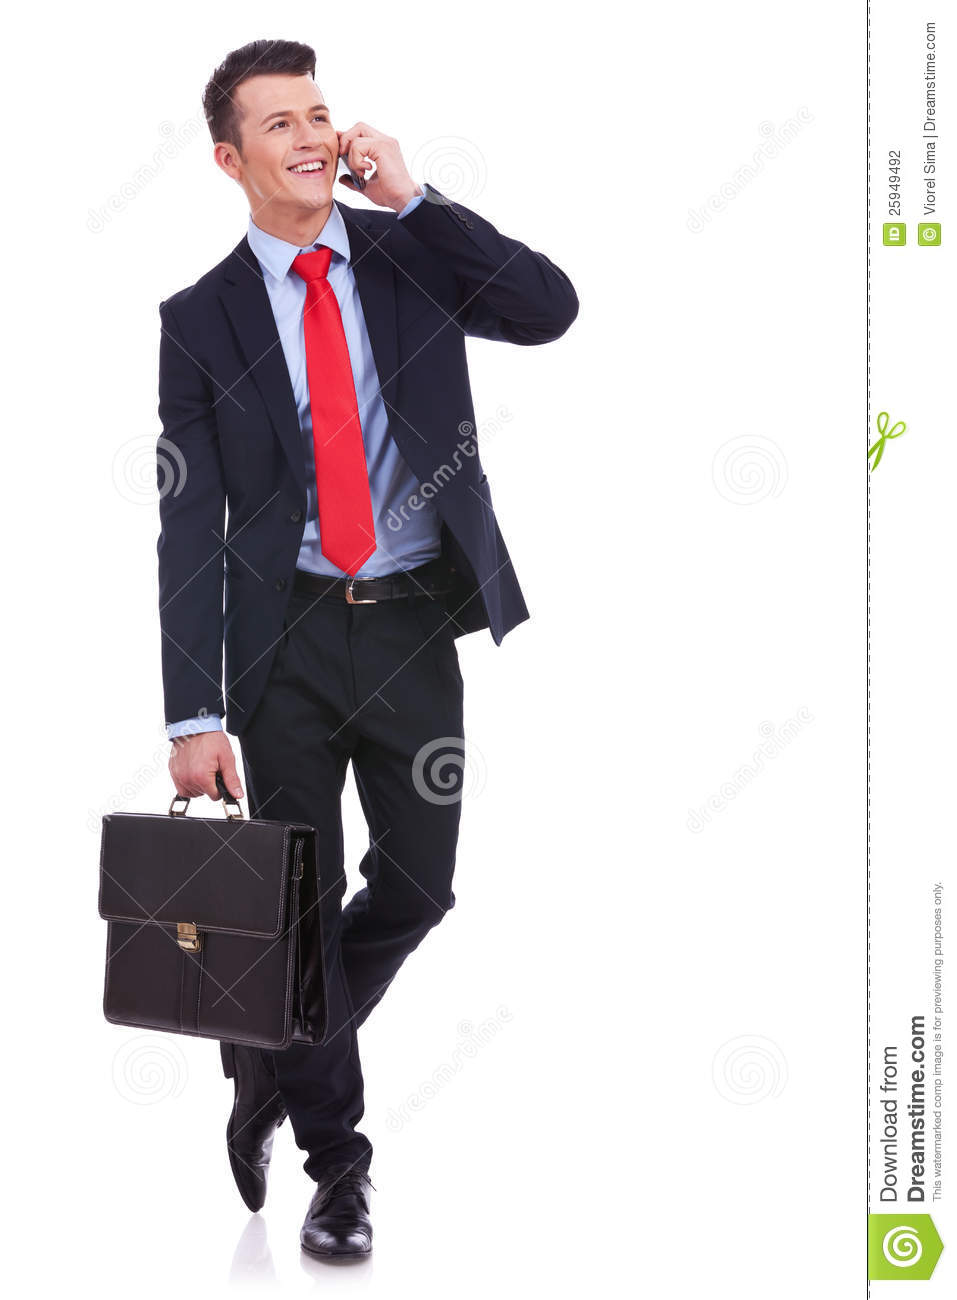 business-man-briefcase-talking-phone-25949492.jpg